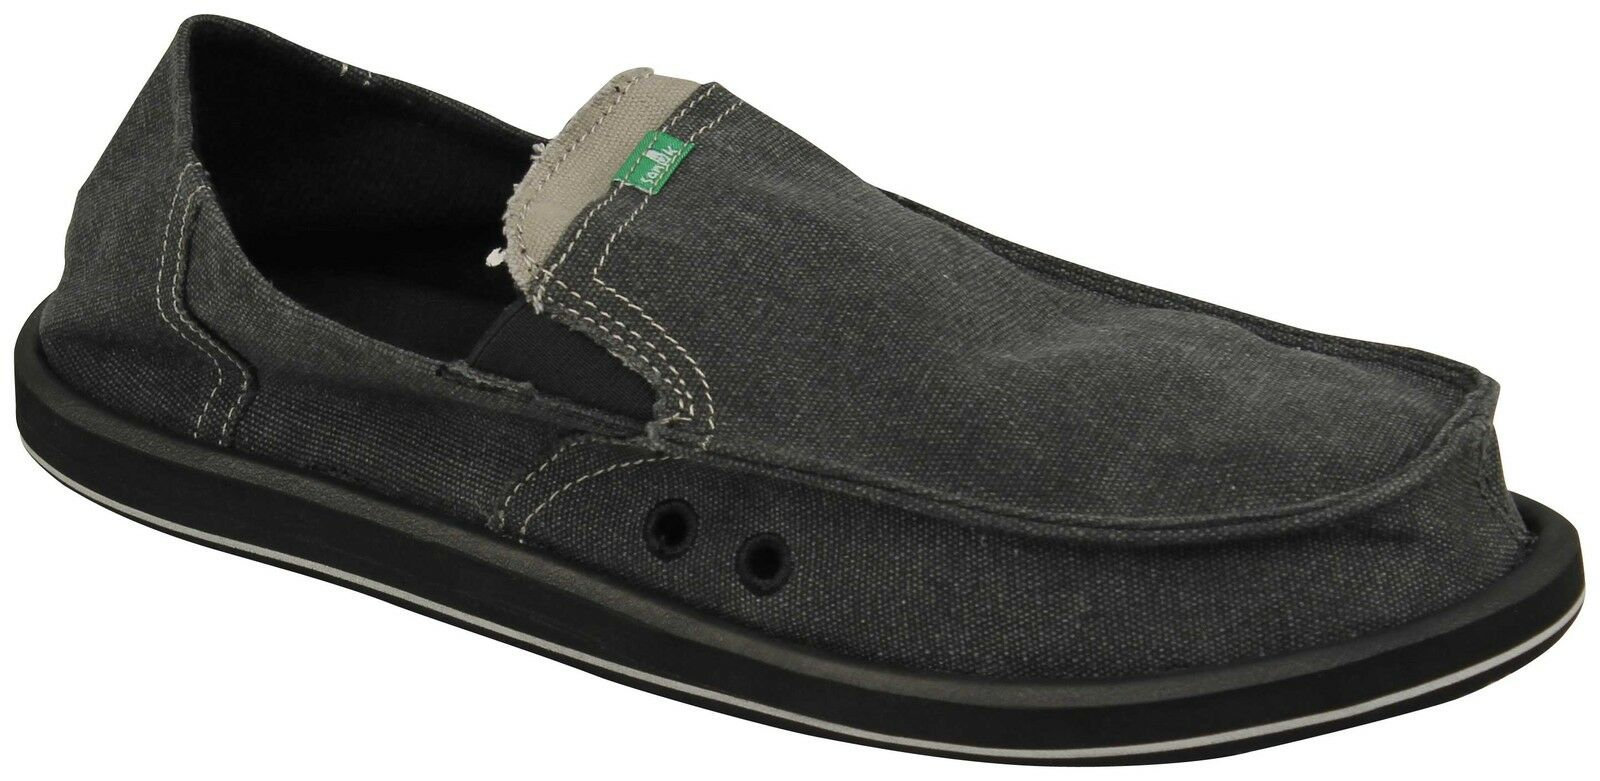 Sanuk Pick Pocket Sidewalk Surfer - Charcoal - New